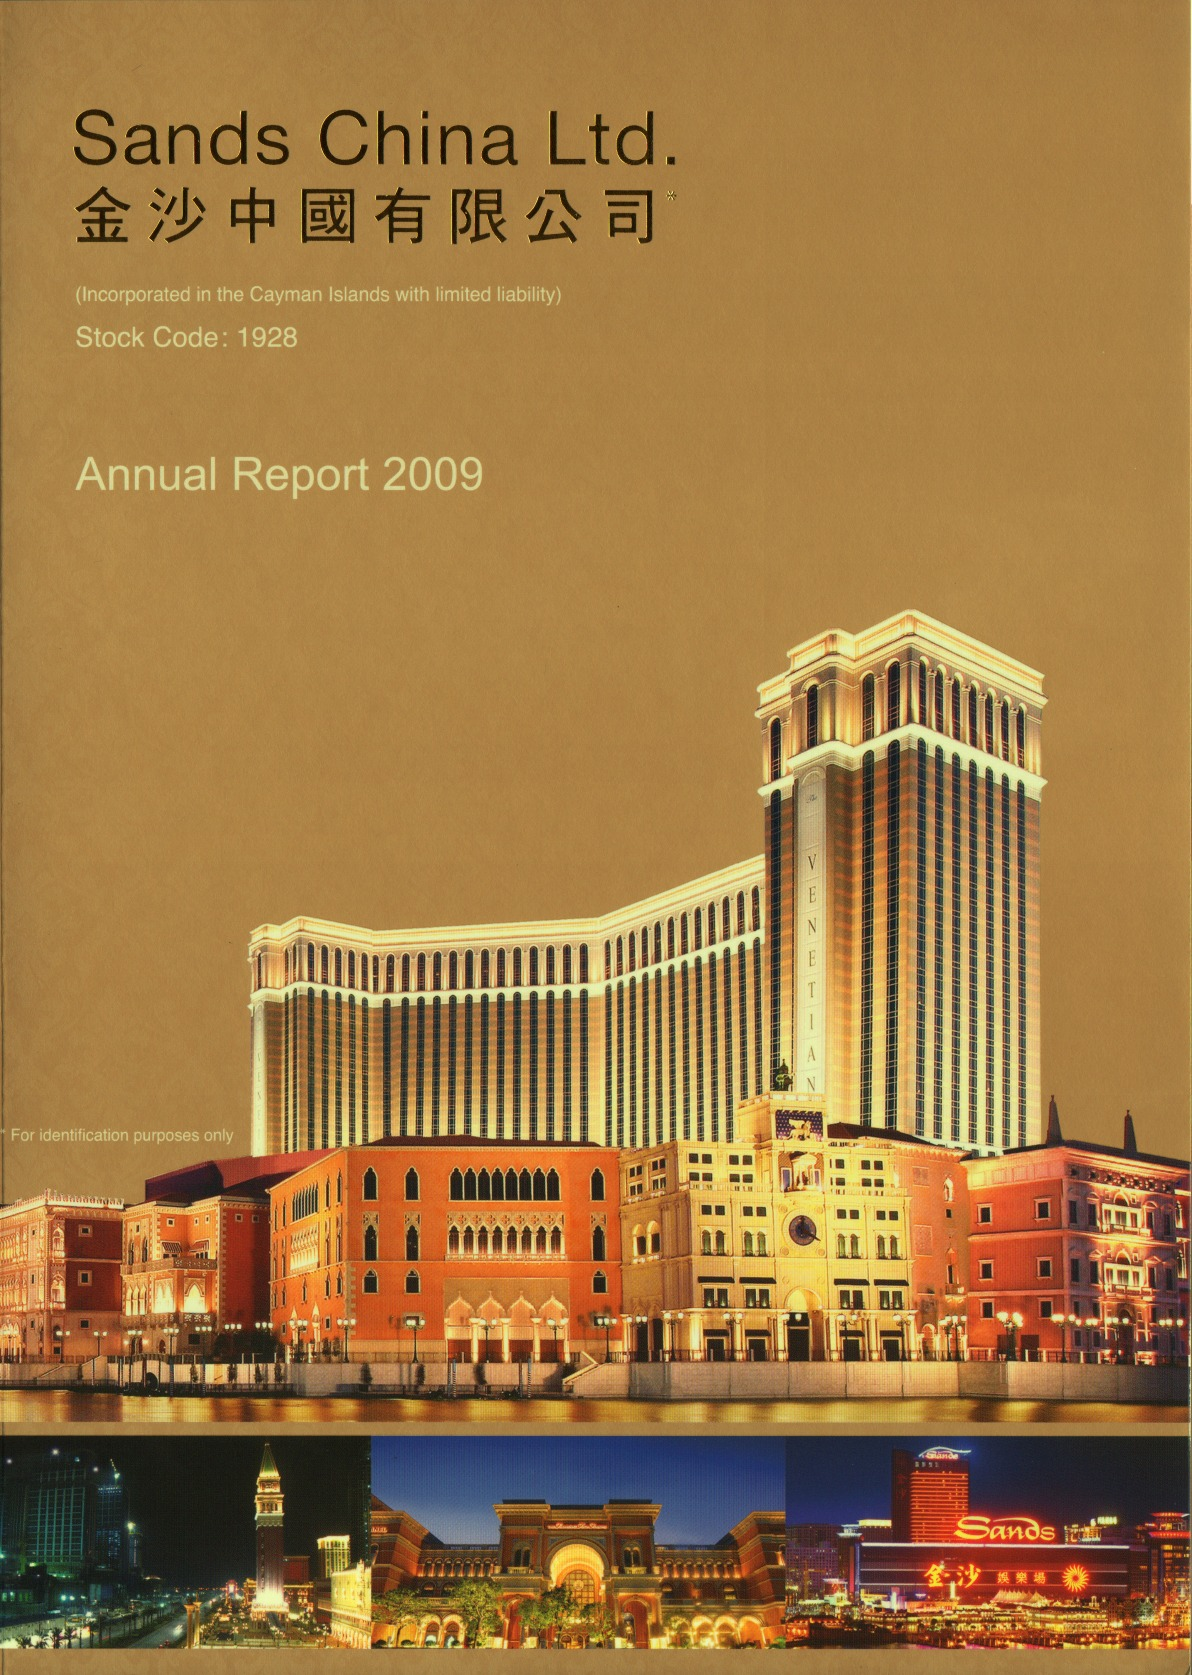 LACP 2009 Vision Awards Annual Report Competition  Sands China Ltd  RR Donnelley Roman Financial